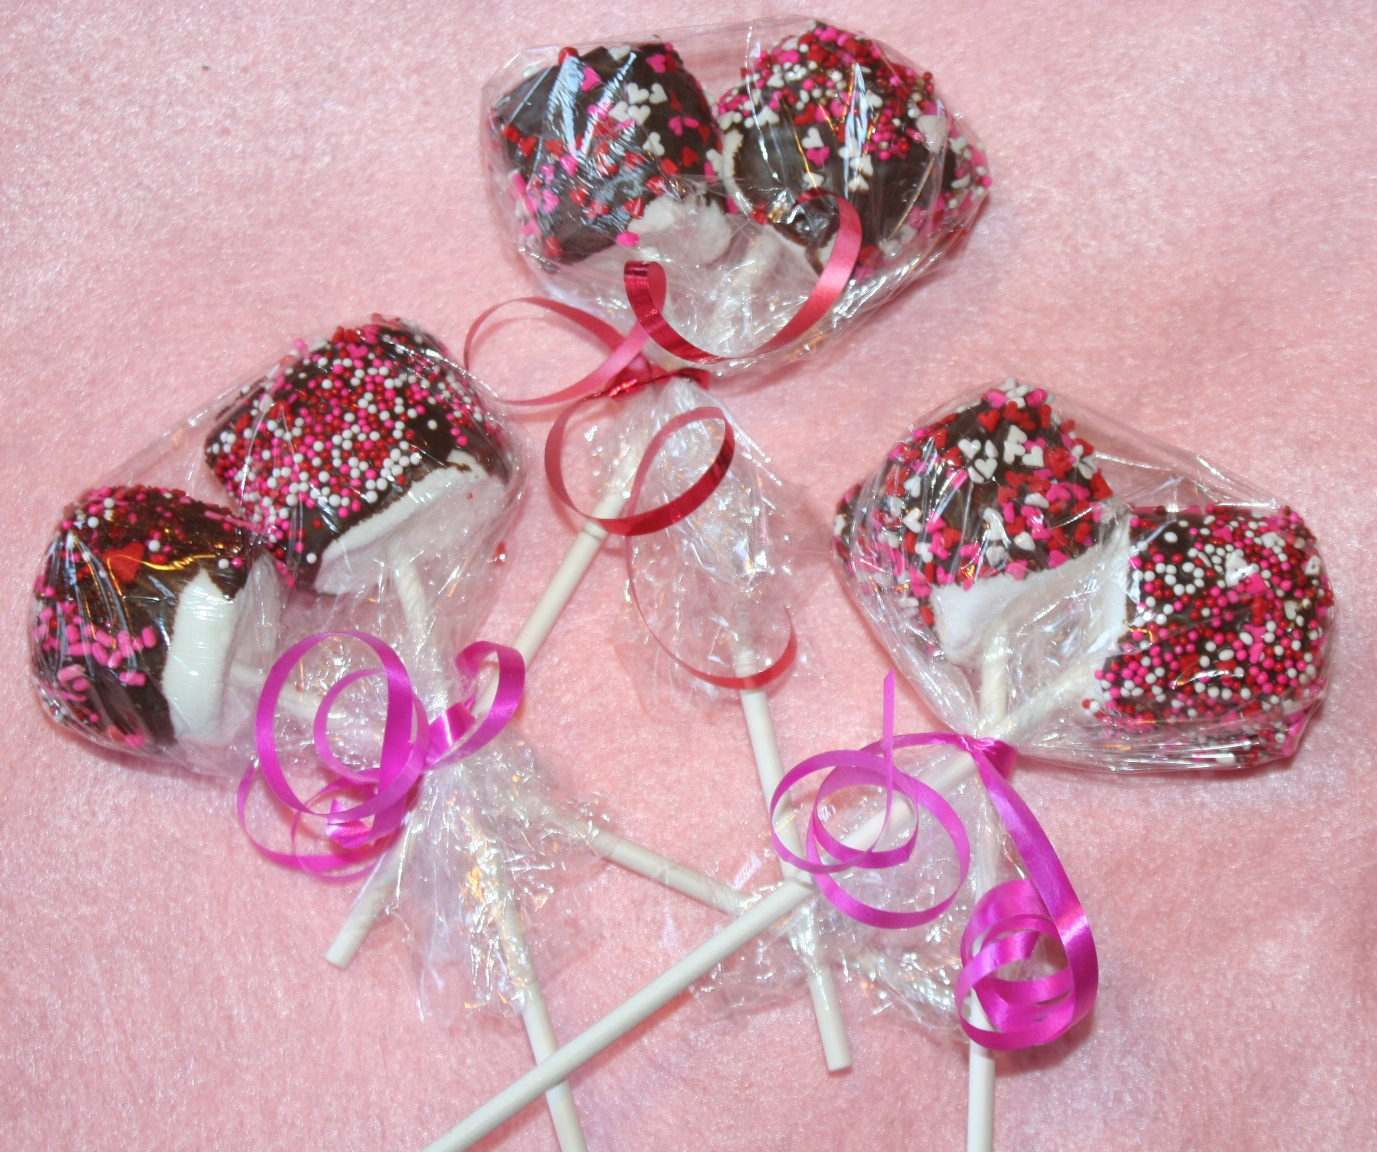 How to Make Chocolate Covered Marshmallow Lollipops